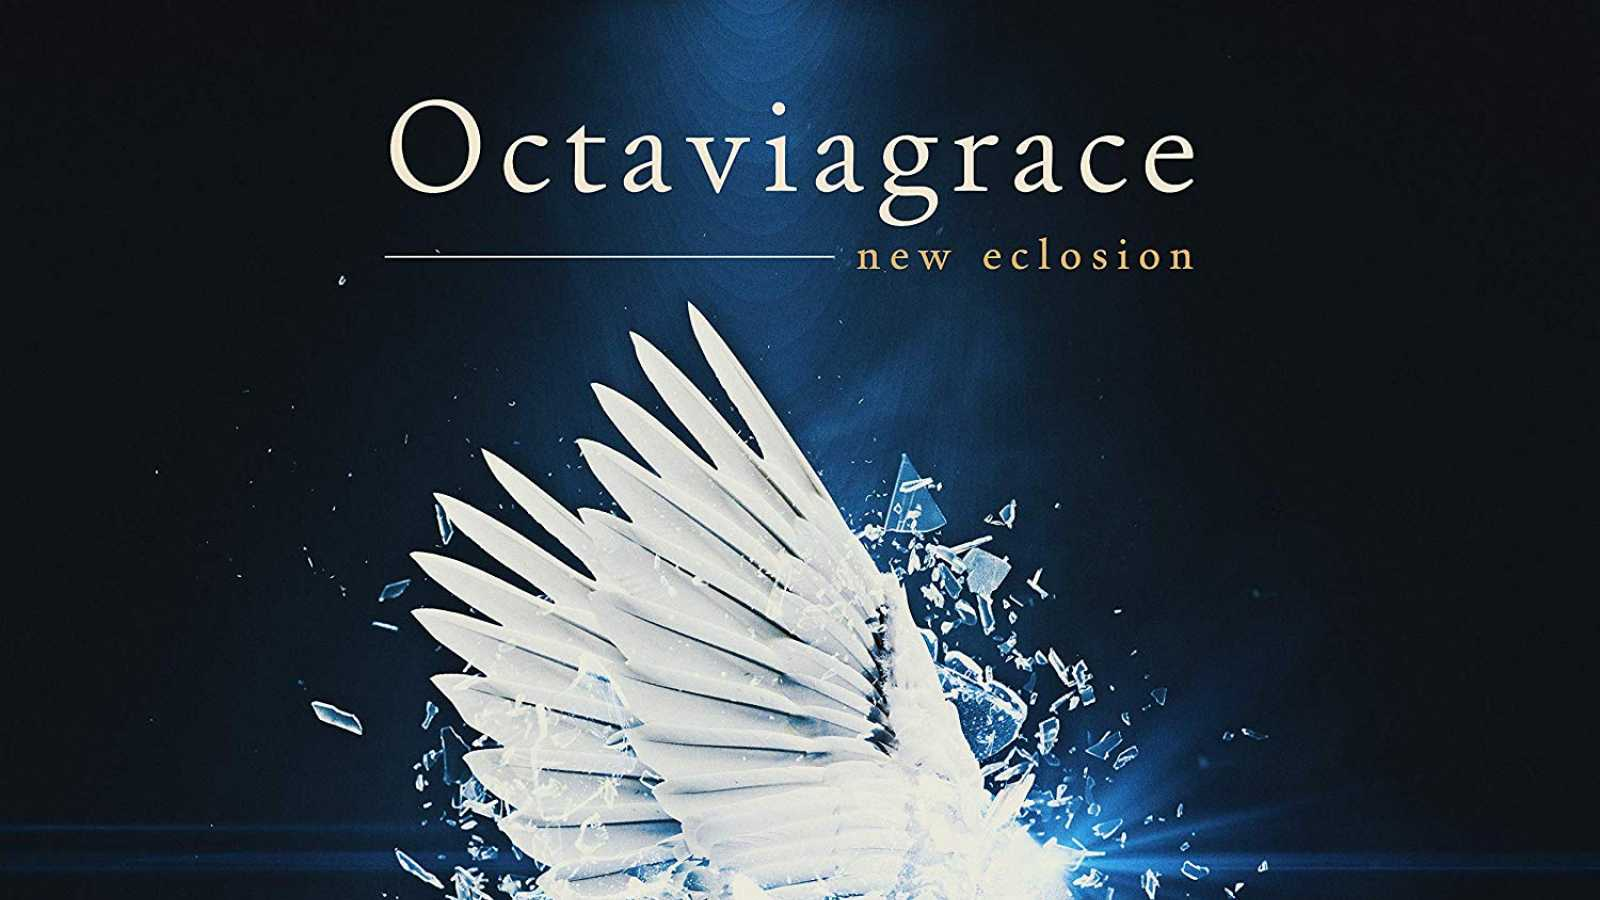 Octaviagrace - new eclosion © Octaviagrace. All rights reserved.